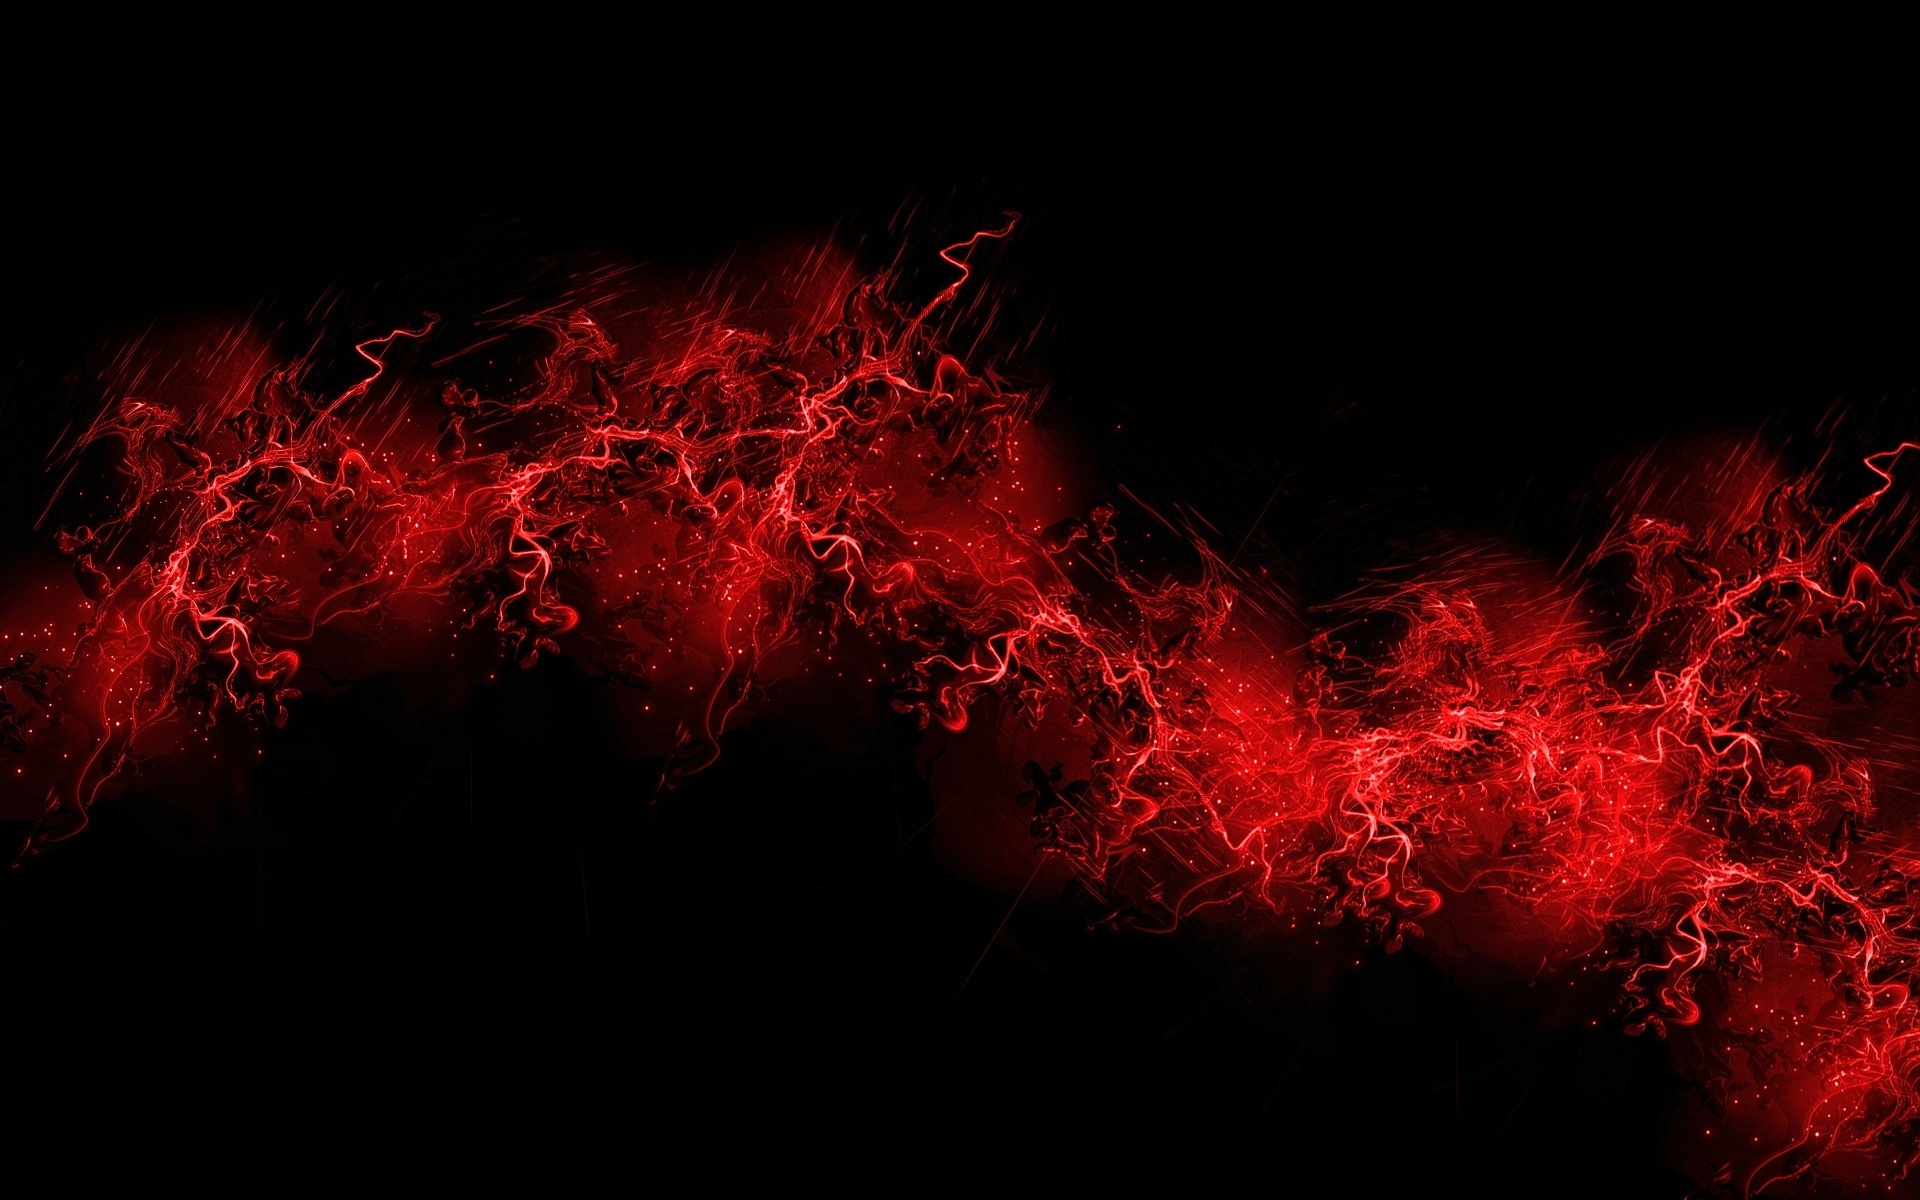 Black And Red Background Powerpoint Backgrounds For Free Powerpoint Templates